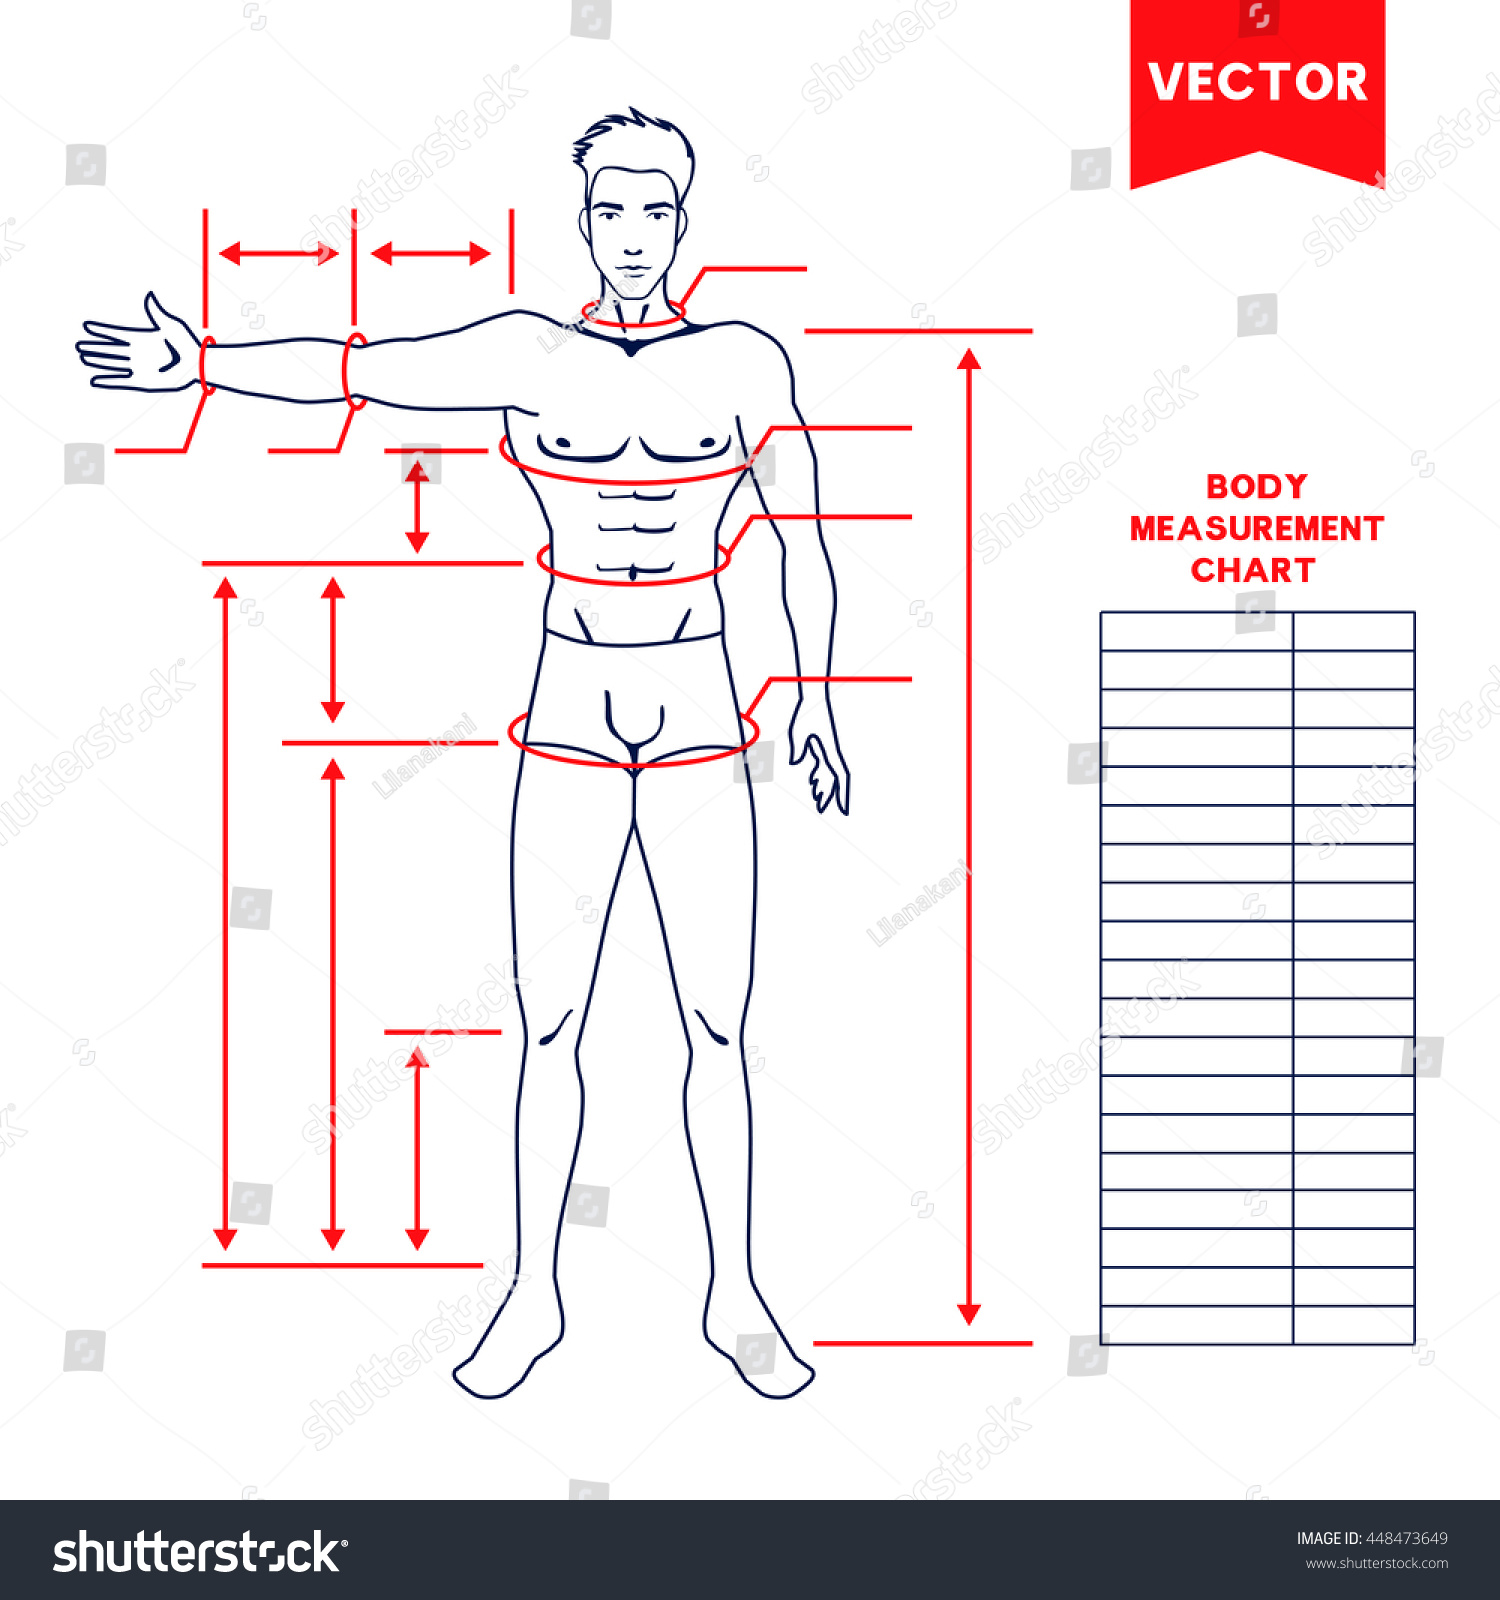 Male Body Measurement Chart Scheme For Human Sewing Clothes Dieting